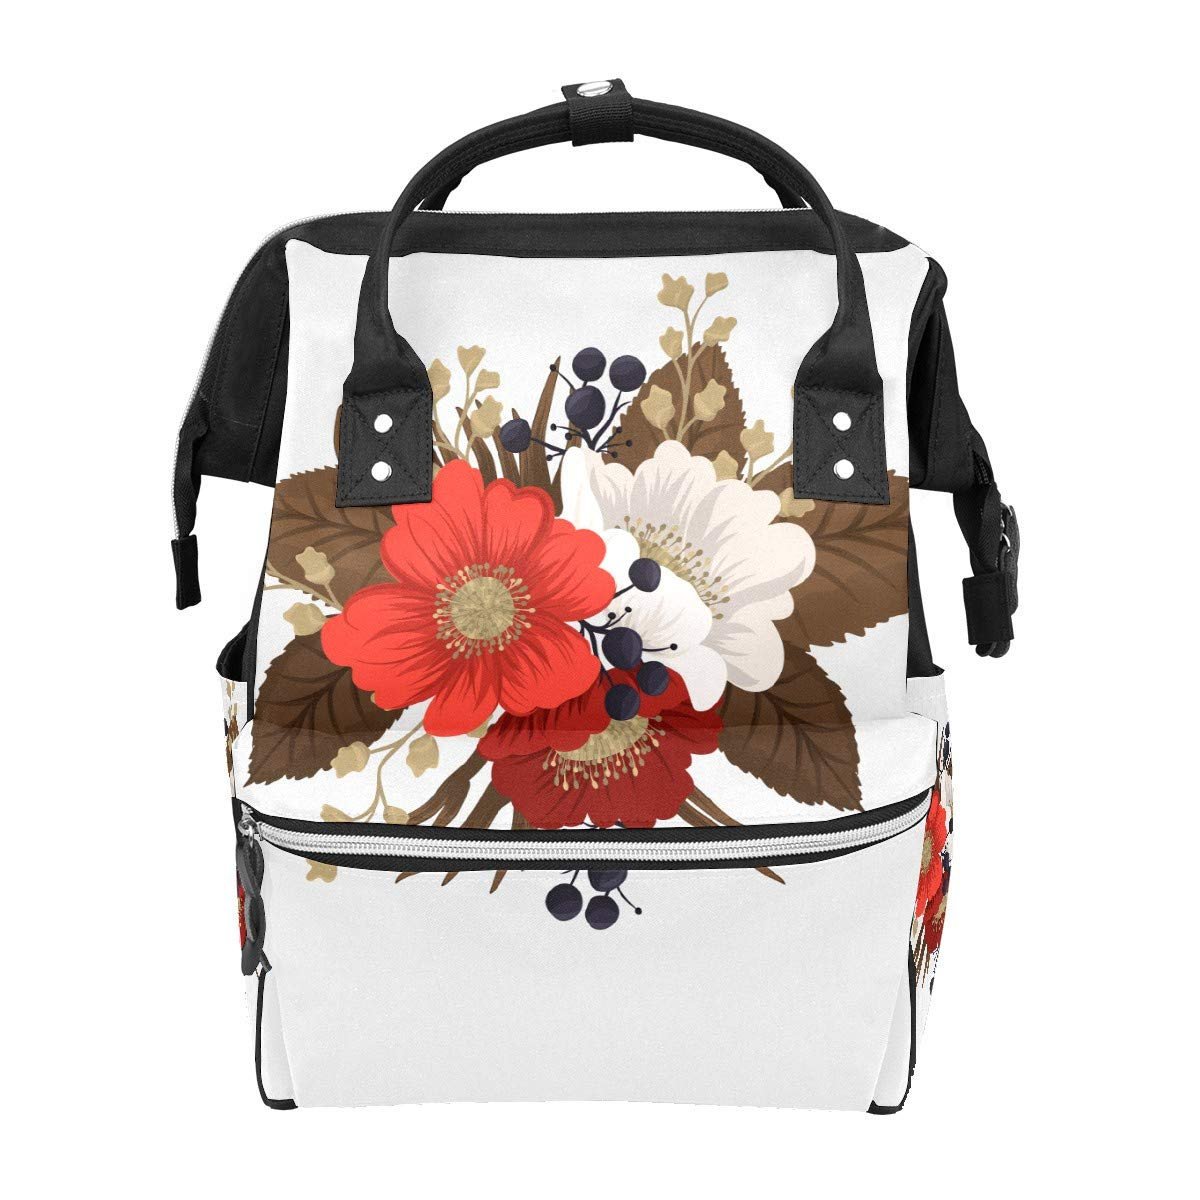 Diaper Bag Backpack Red Clipart Flower Multifunction Travel Back Pack Baby Changing Bags Large Capacity Waterproof Stylish